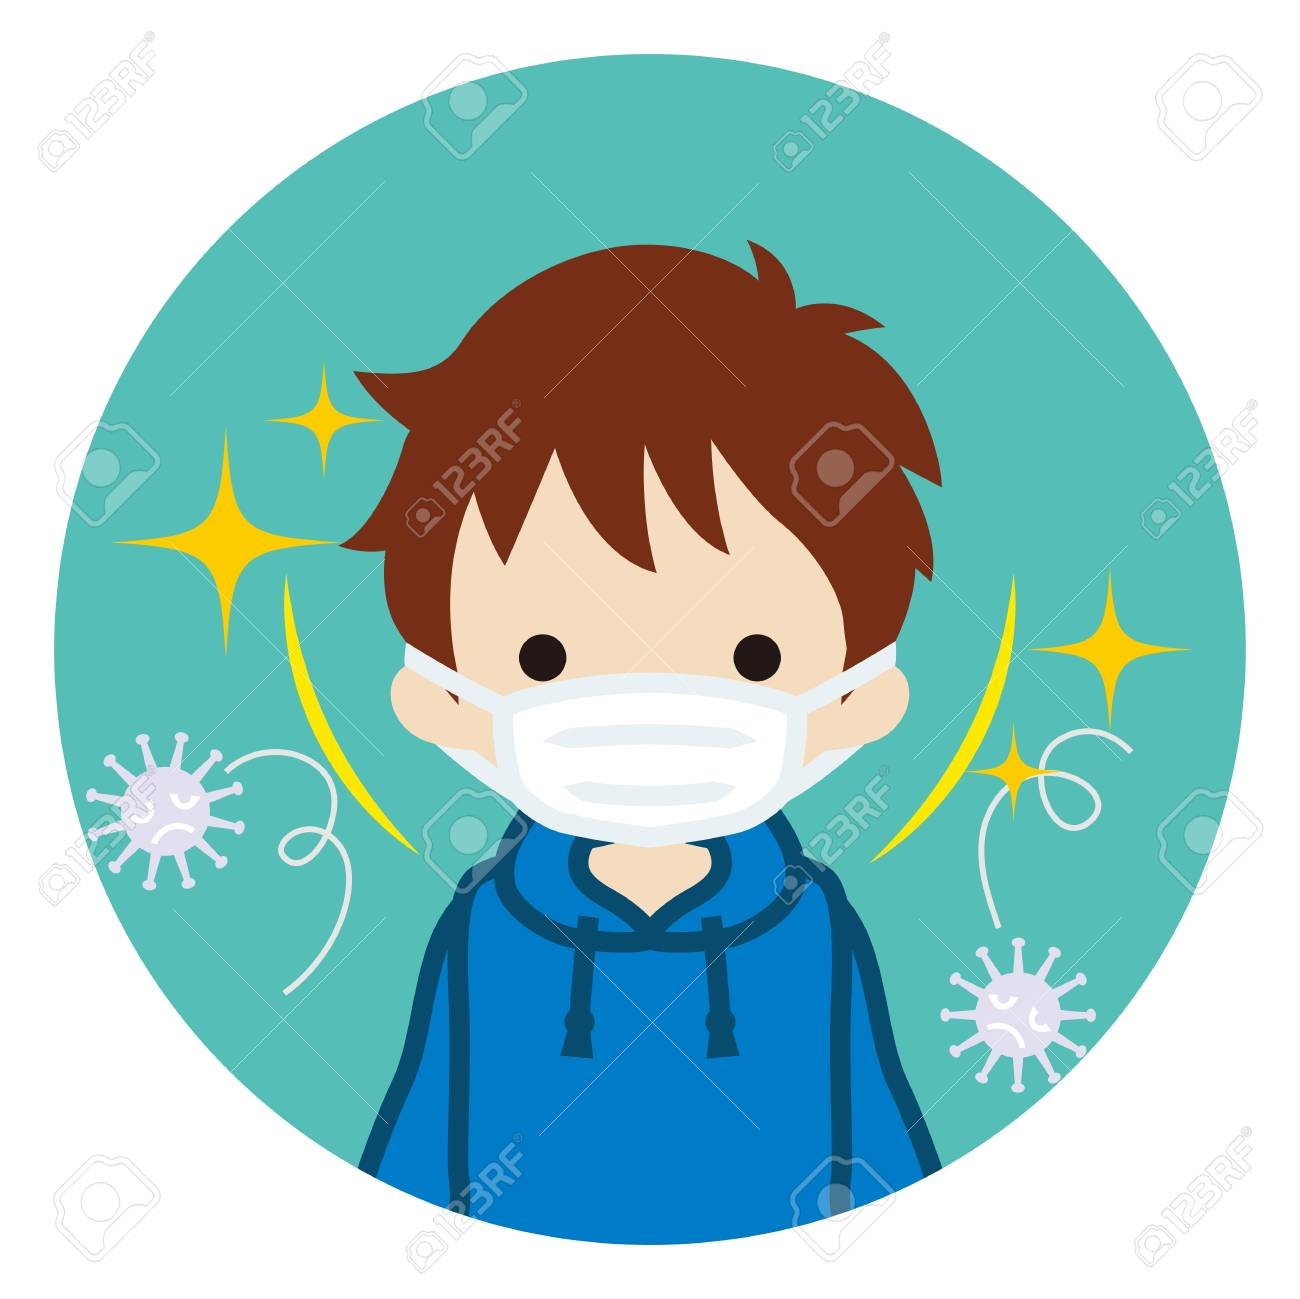 Toddler boy wearing a mask for prevent flu virus - front view, Circular icon - 117371498